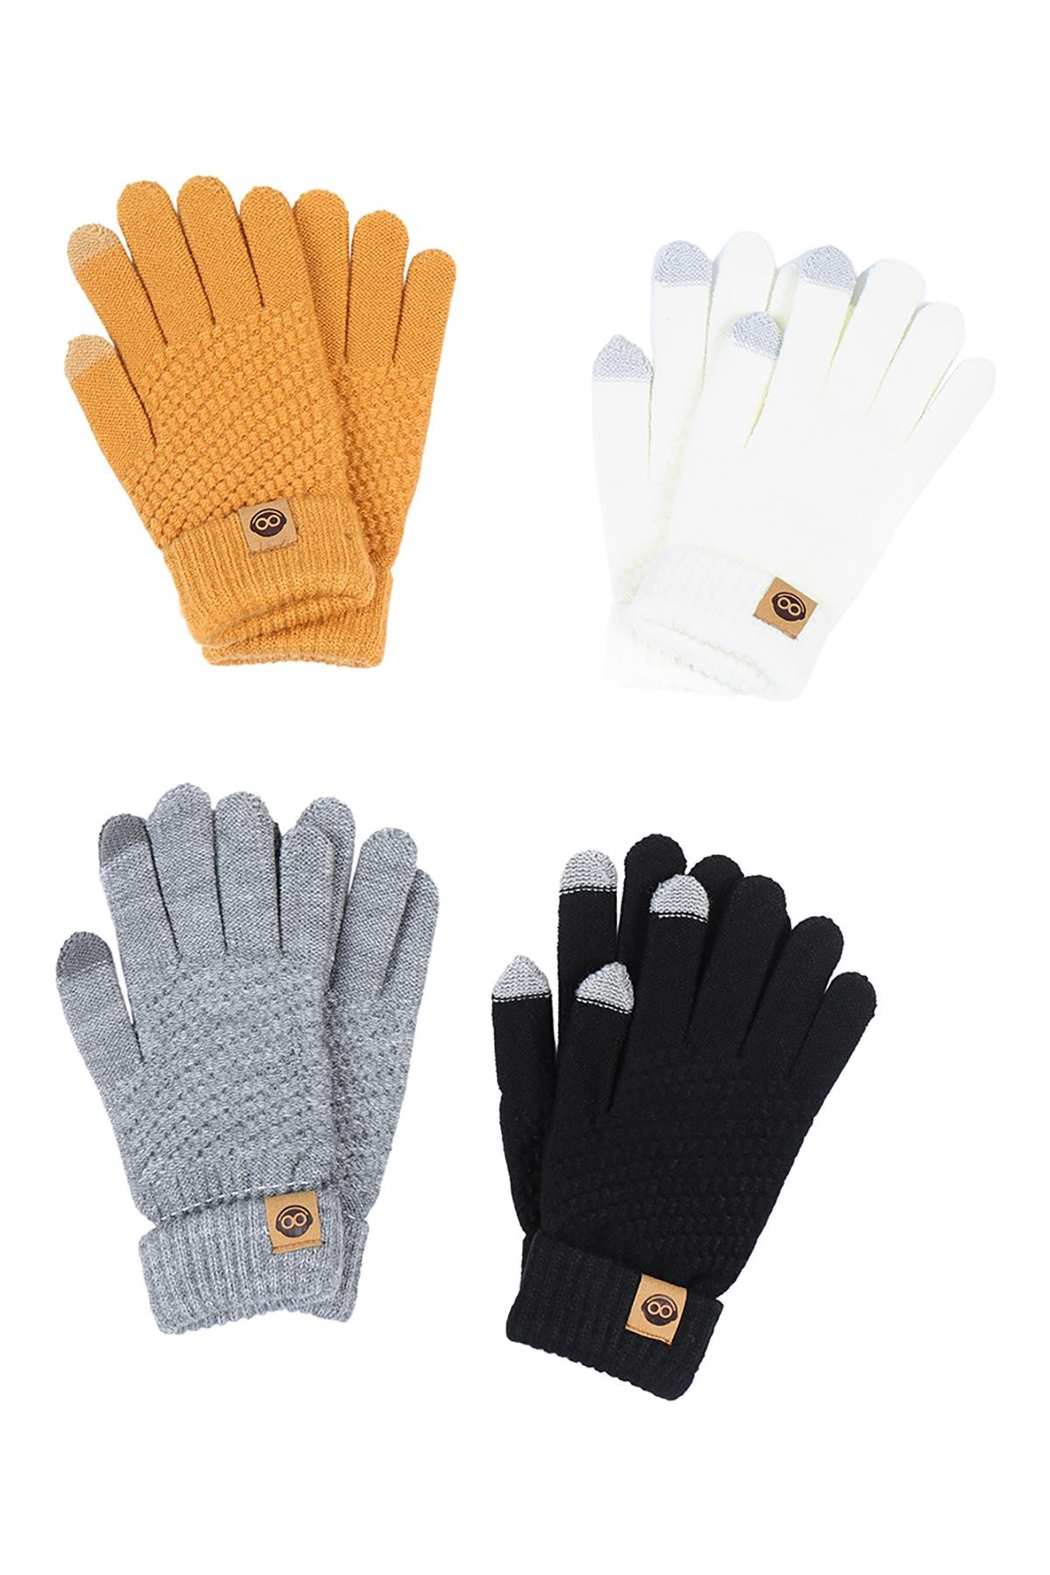 Riah Fashion Winter-Gloves-Knit-Smart-Touch-Assorted-Set - Main Image